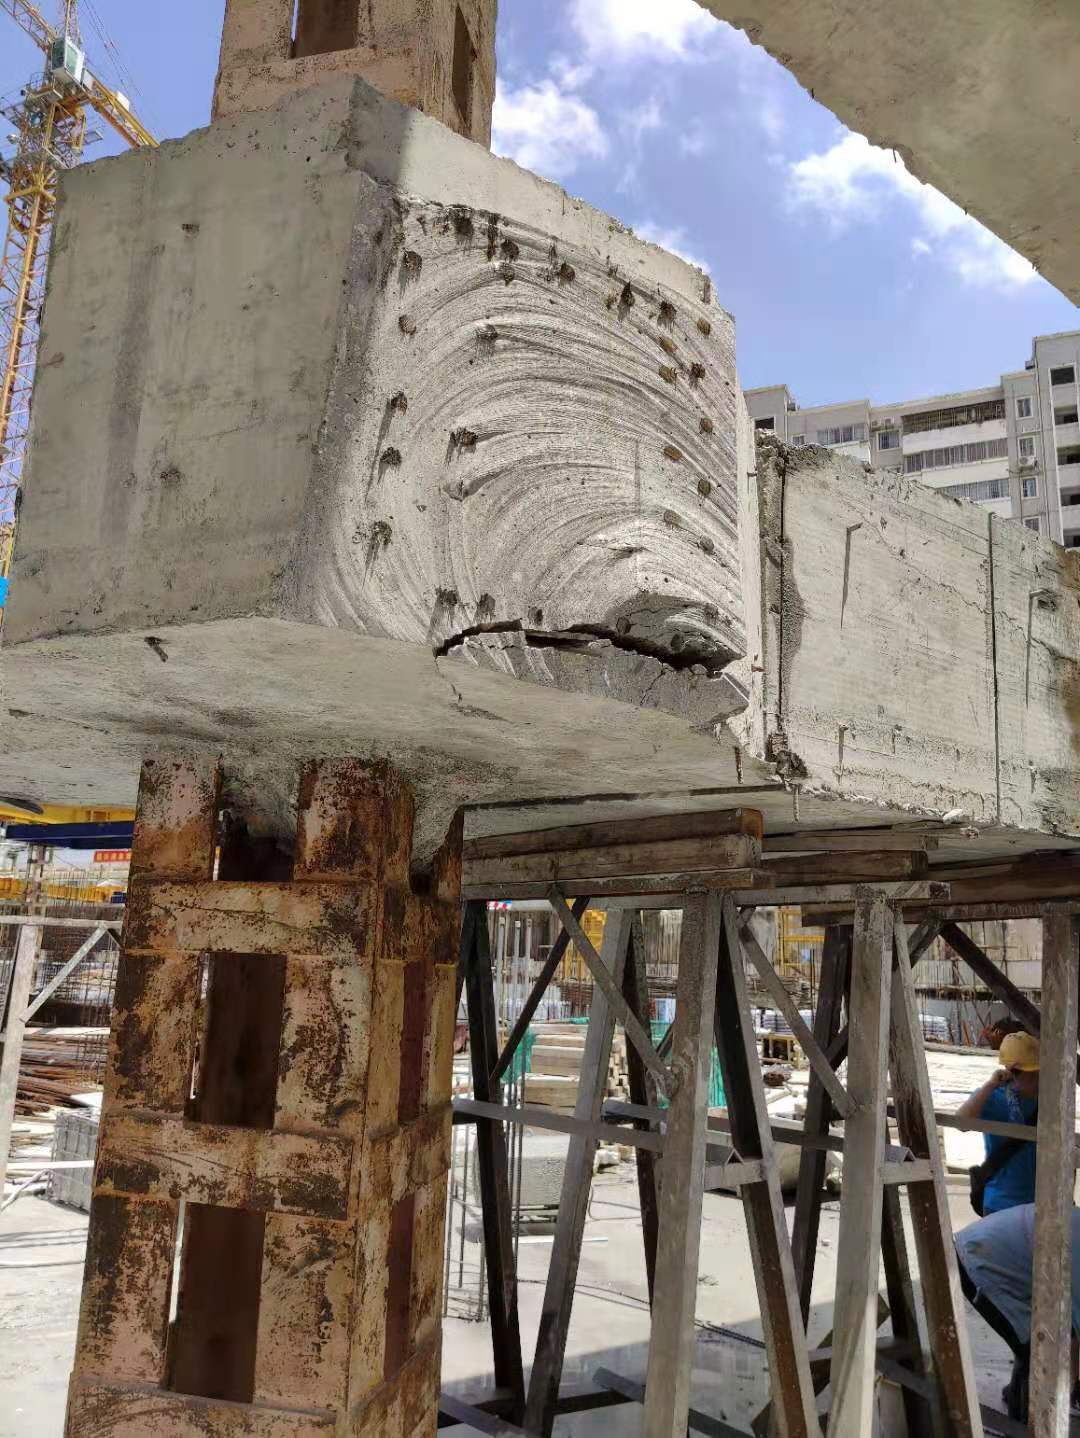 Reinforced concrete cutting